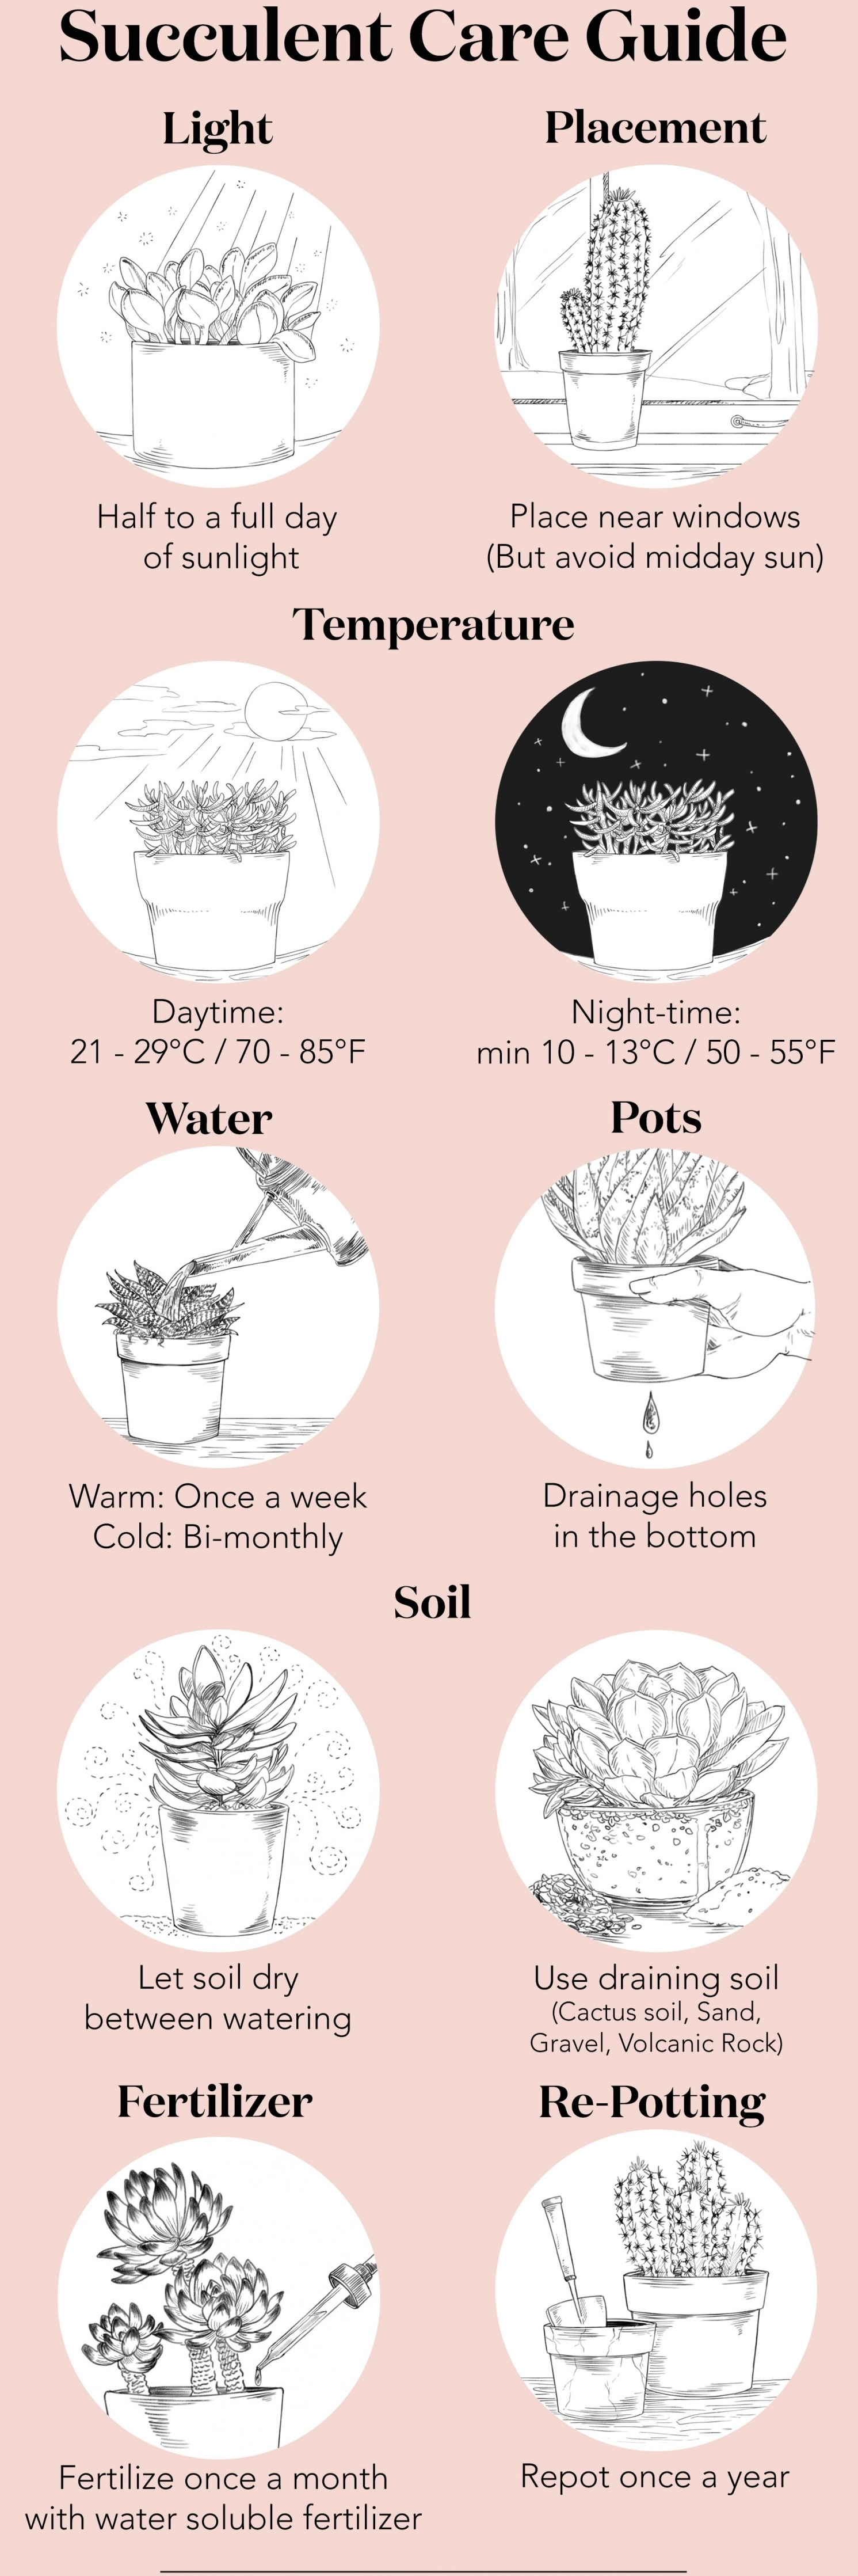 How-to-care-for-your-succulents-778x2334%402x.jpg